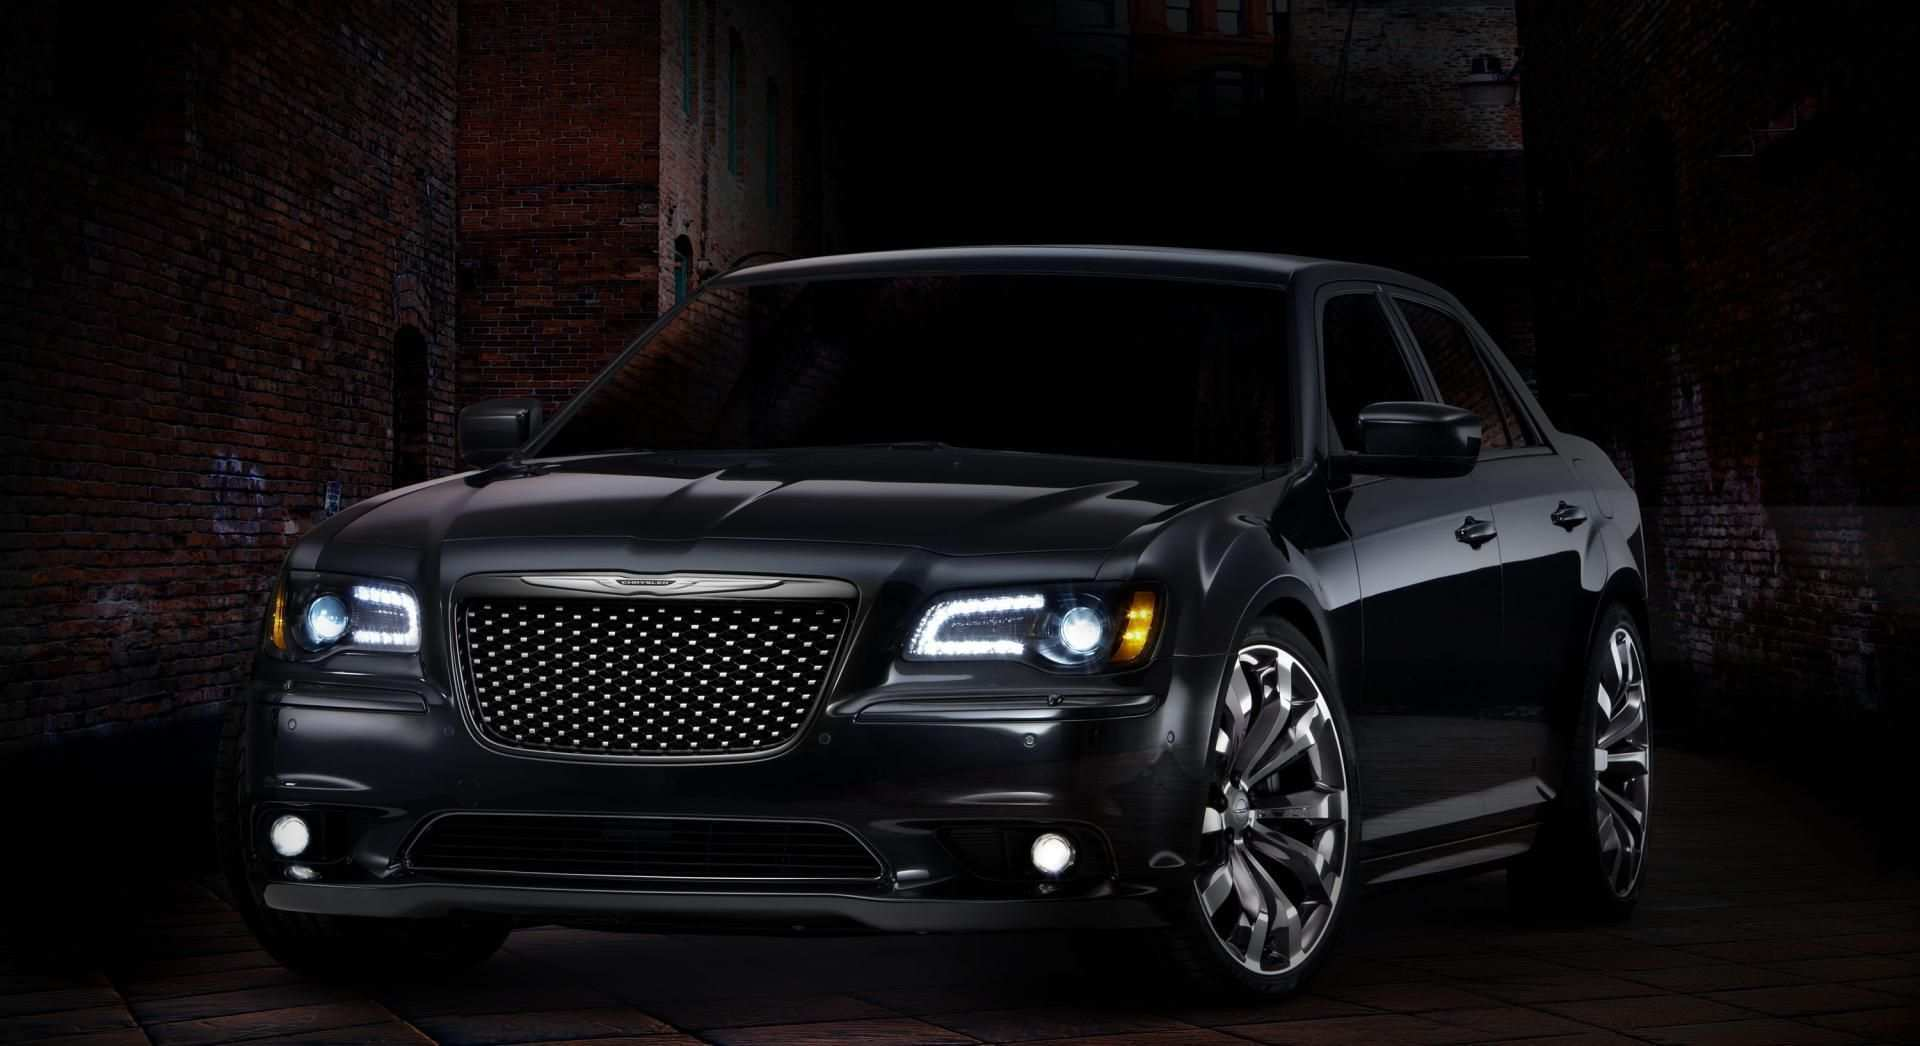 19 Gallery of 2020 Chrysler 300 Srt8 Pricing with 2020 Chrysler 300 Srt8